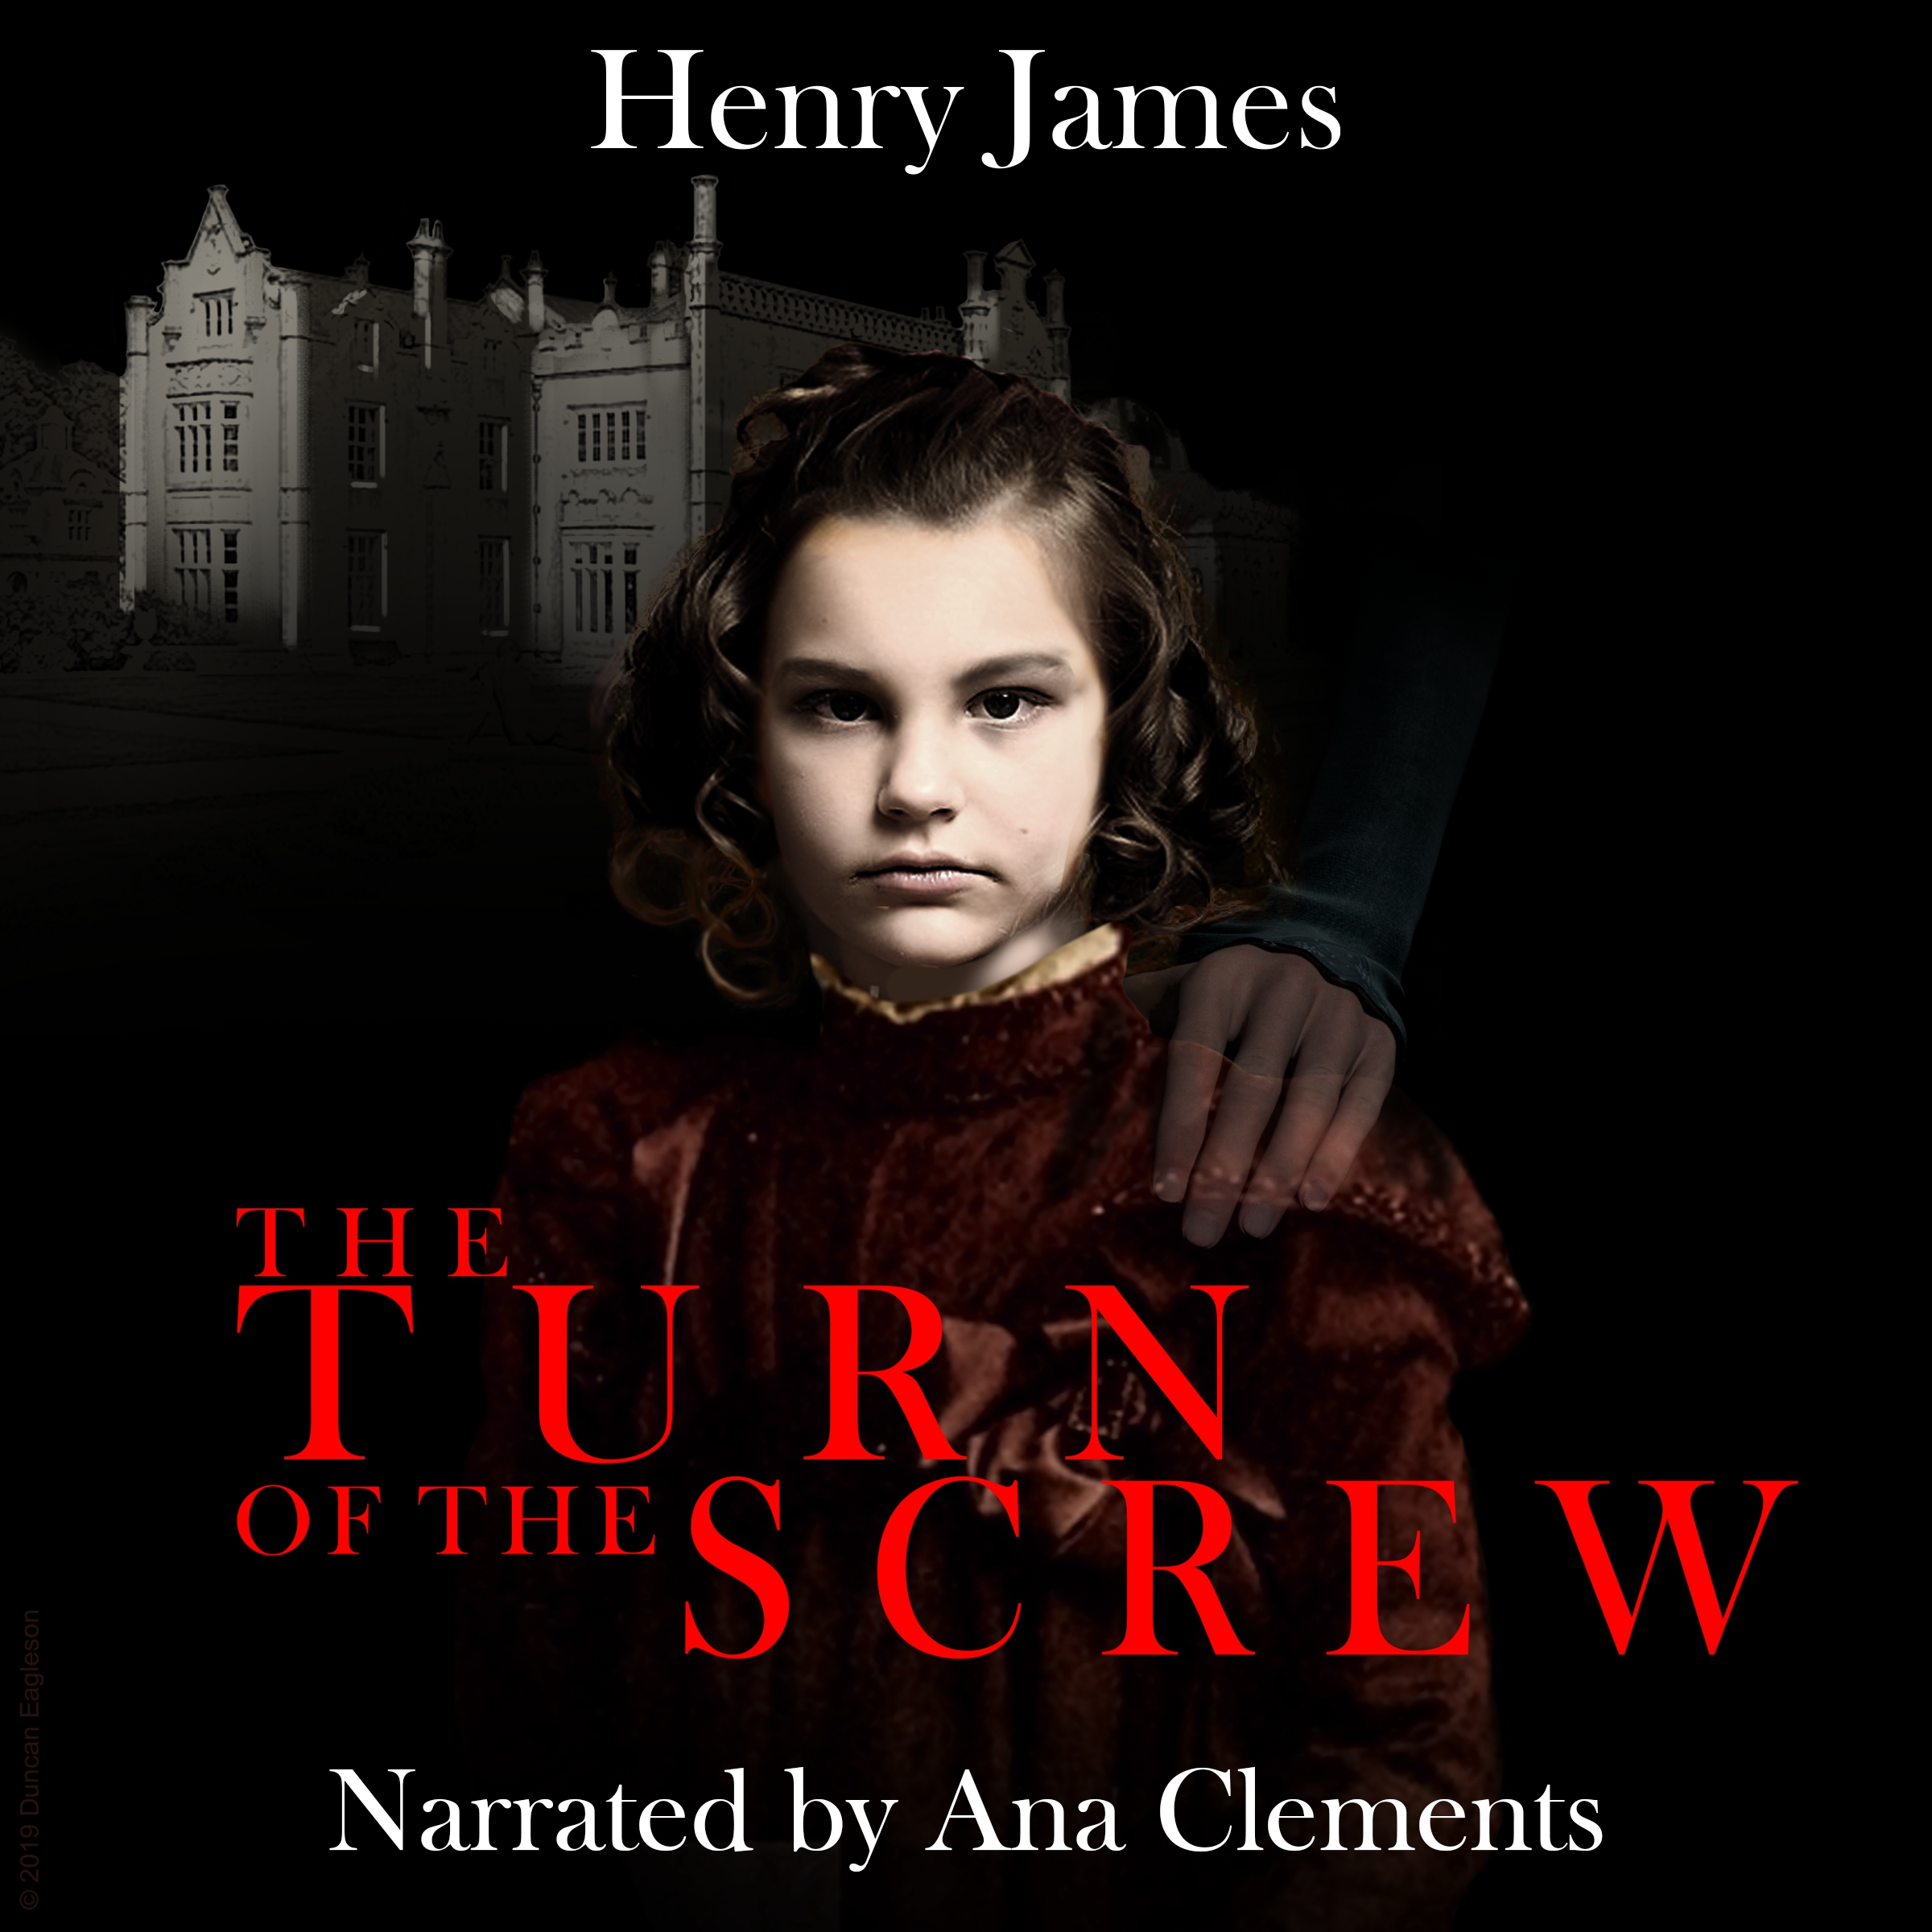 The Turn of the Screw Audio book cover design by Corvid Design